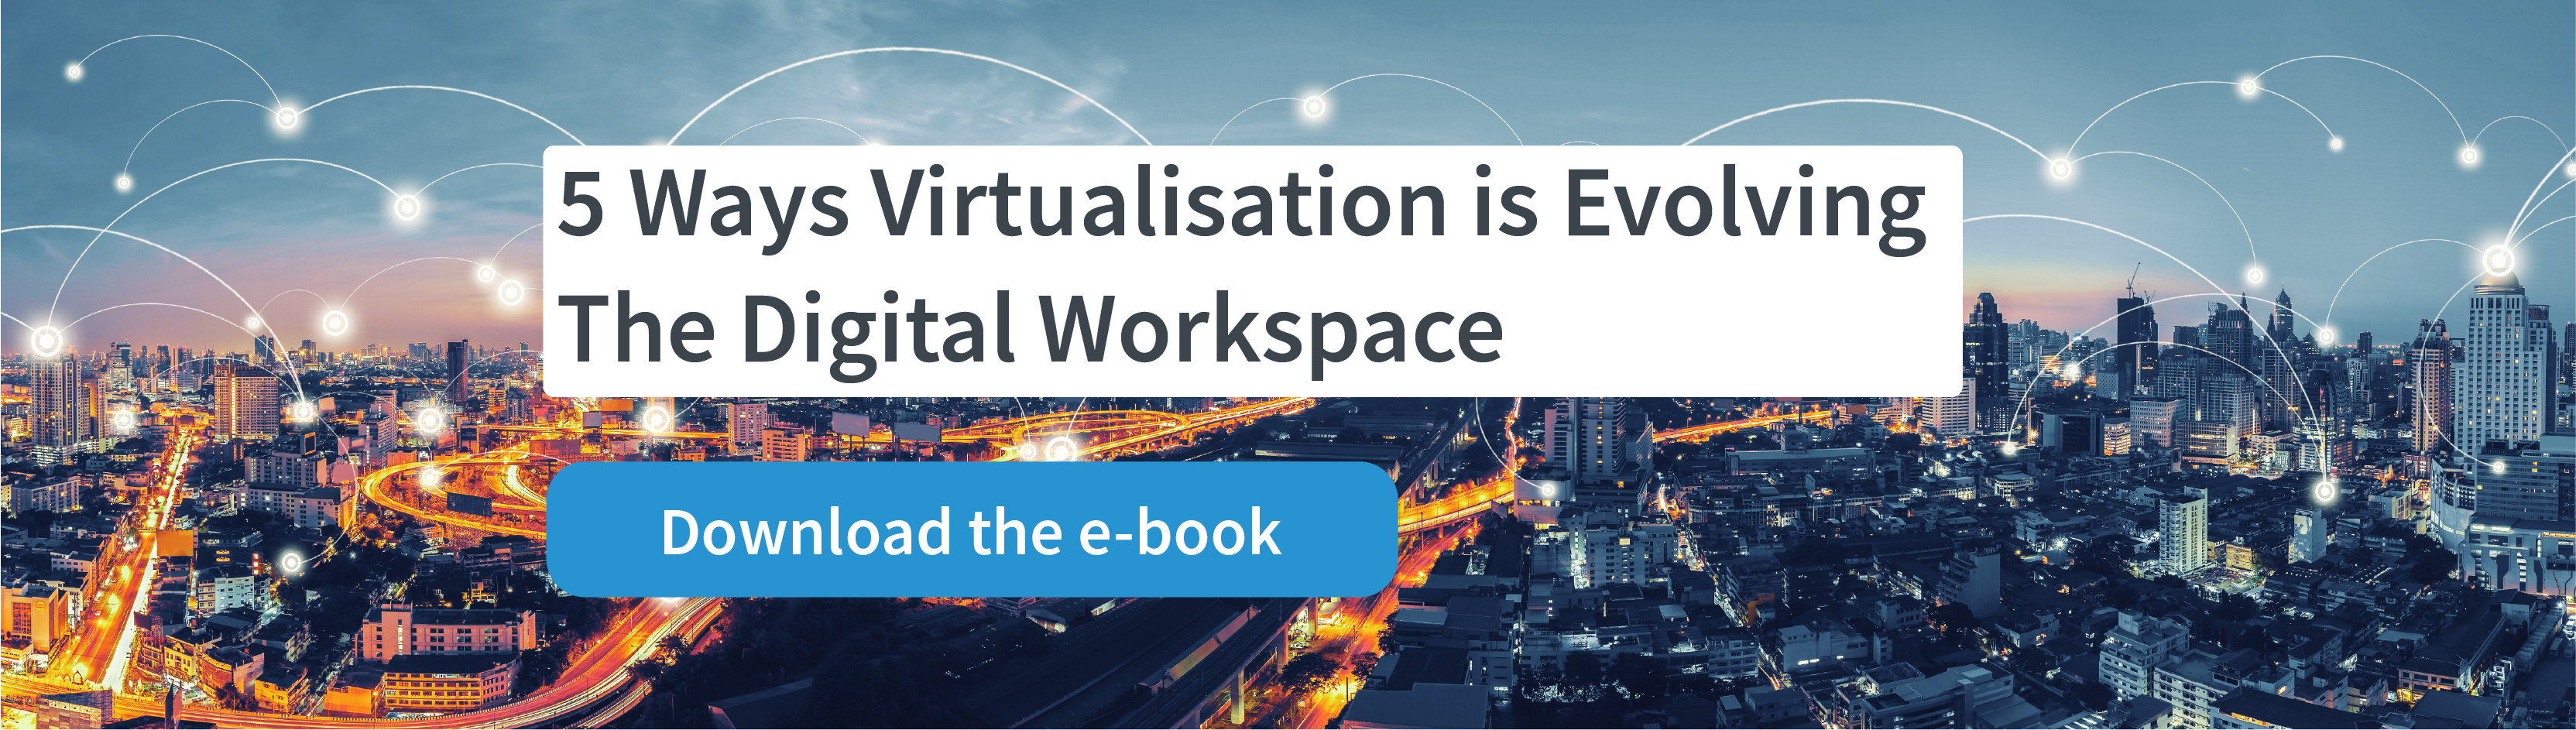 Desktop Virtualisation e-book